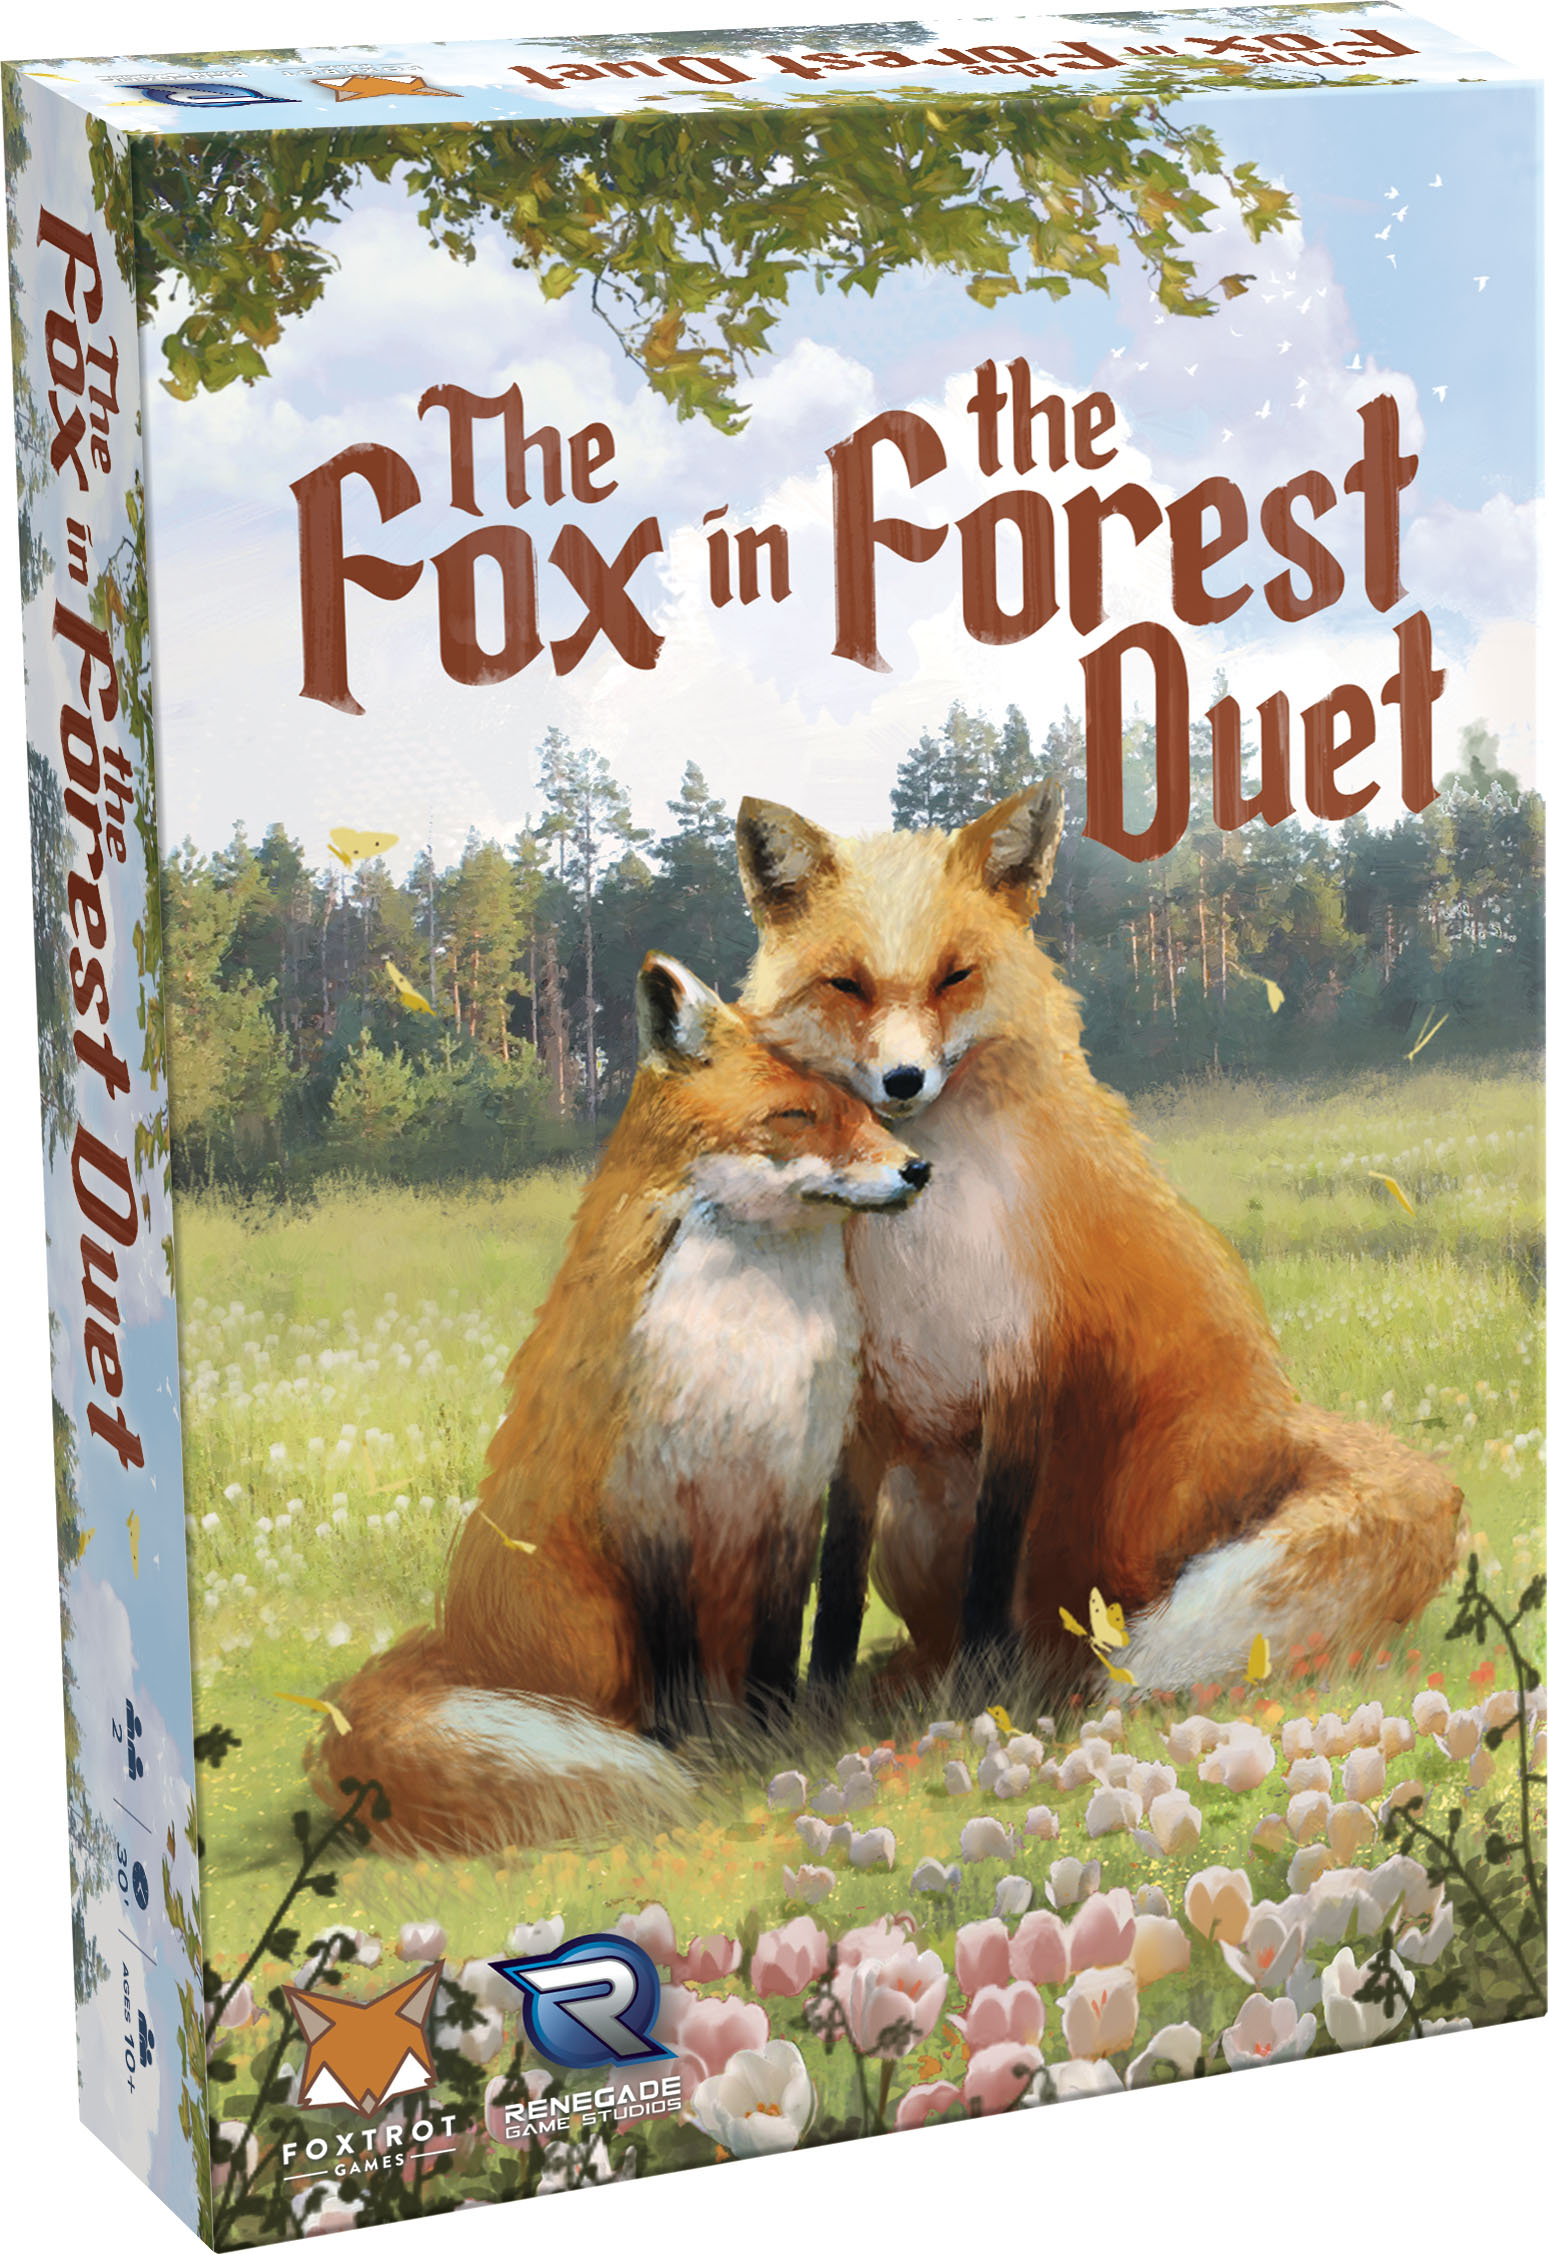 GTM #239 - Fox in the Forest Duet